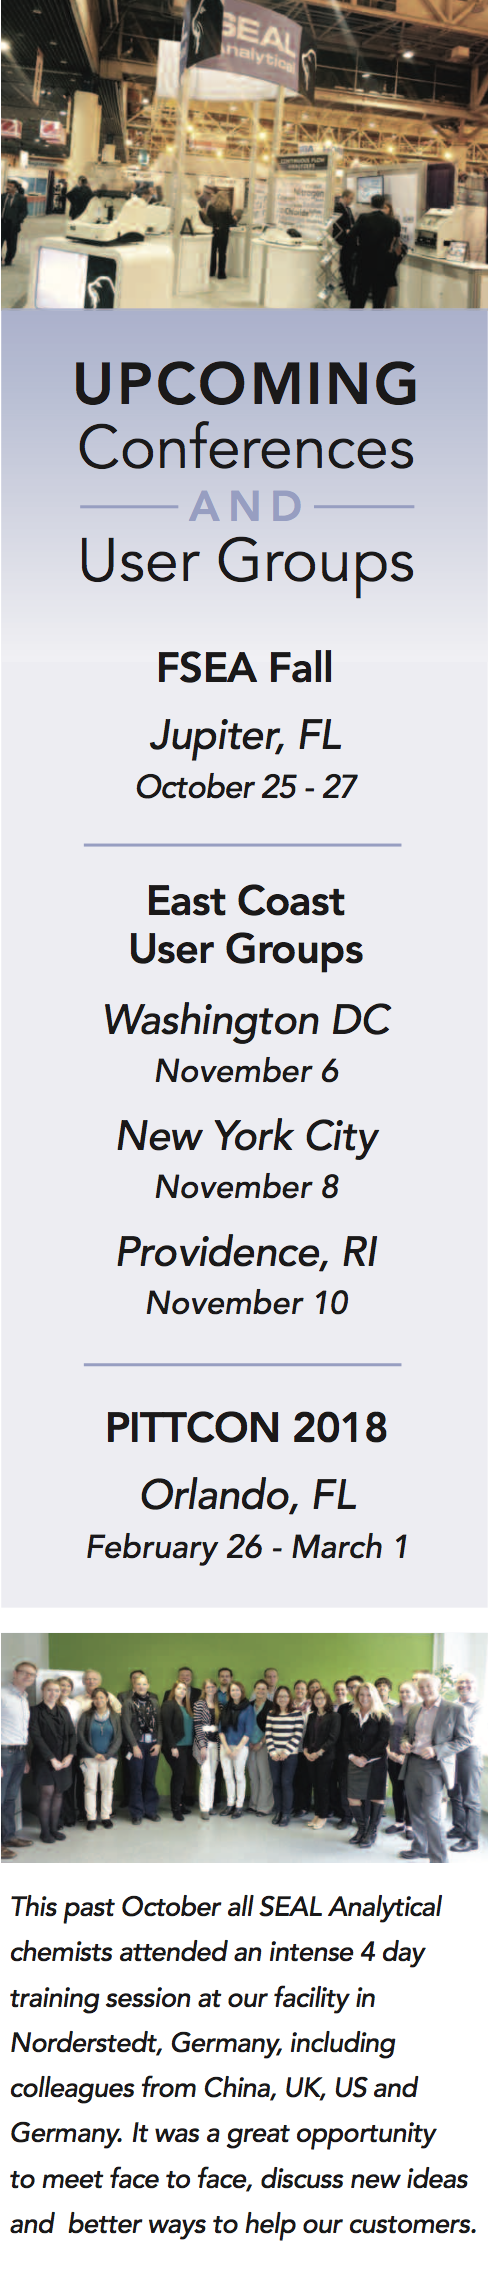 Upcoming SEAL Analytical User Groups